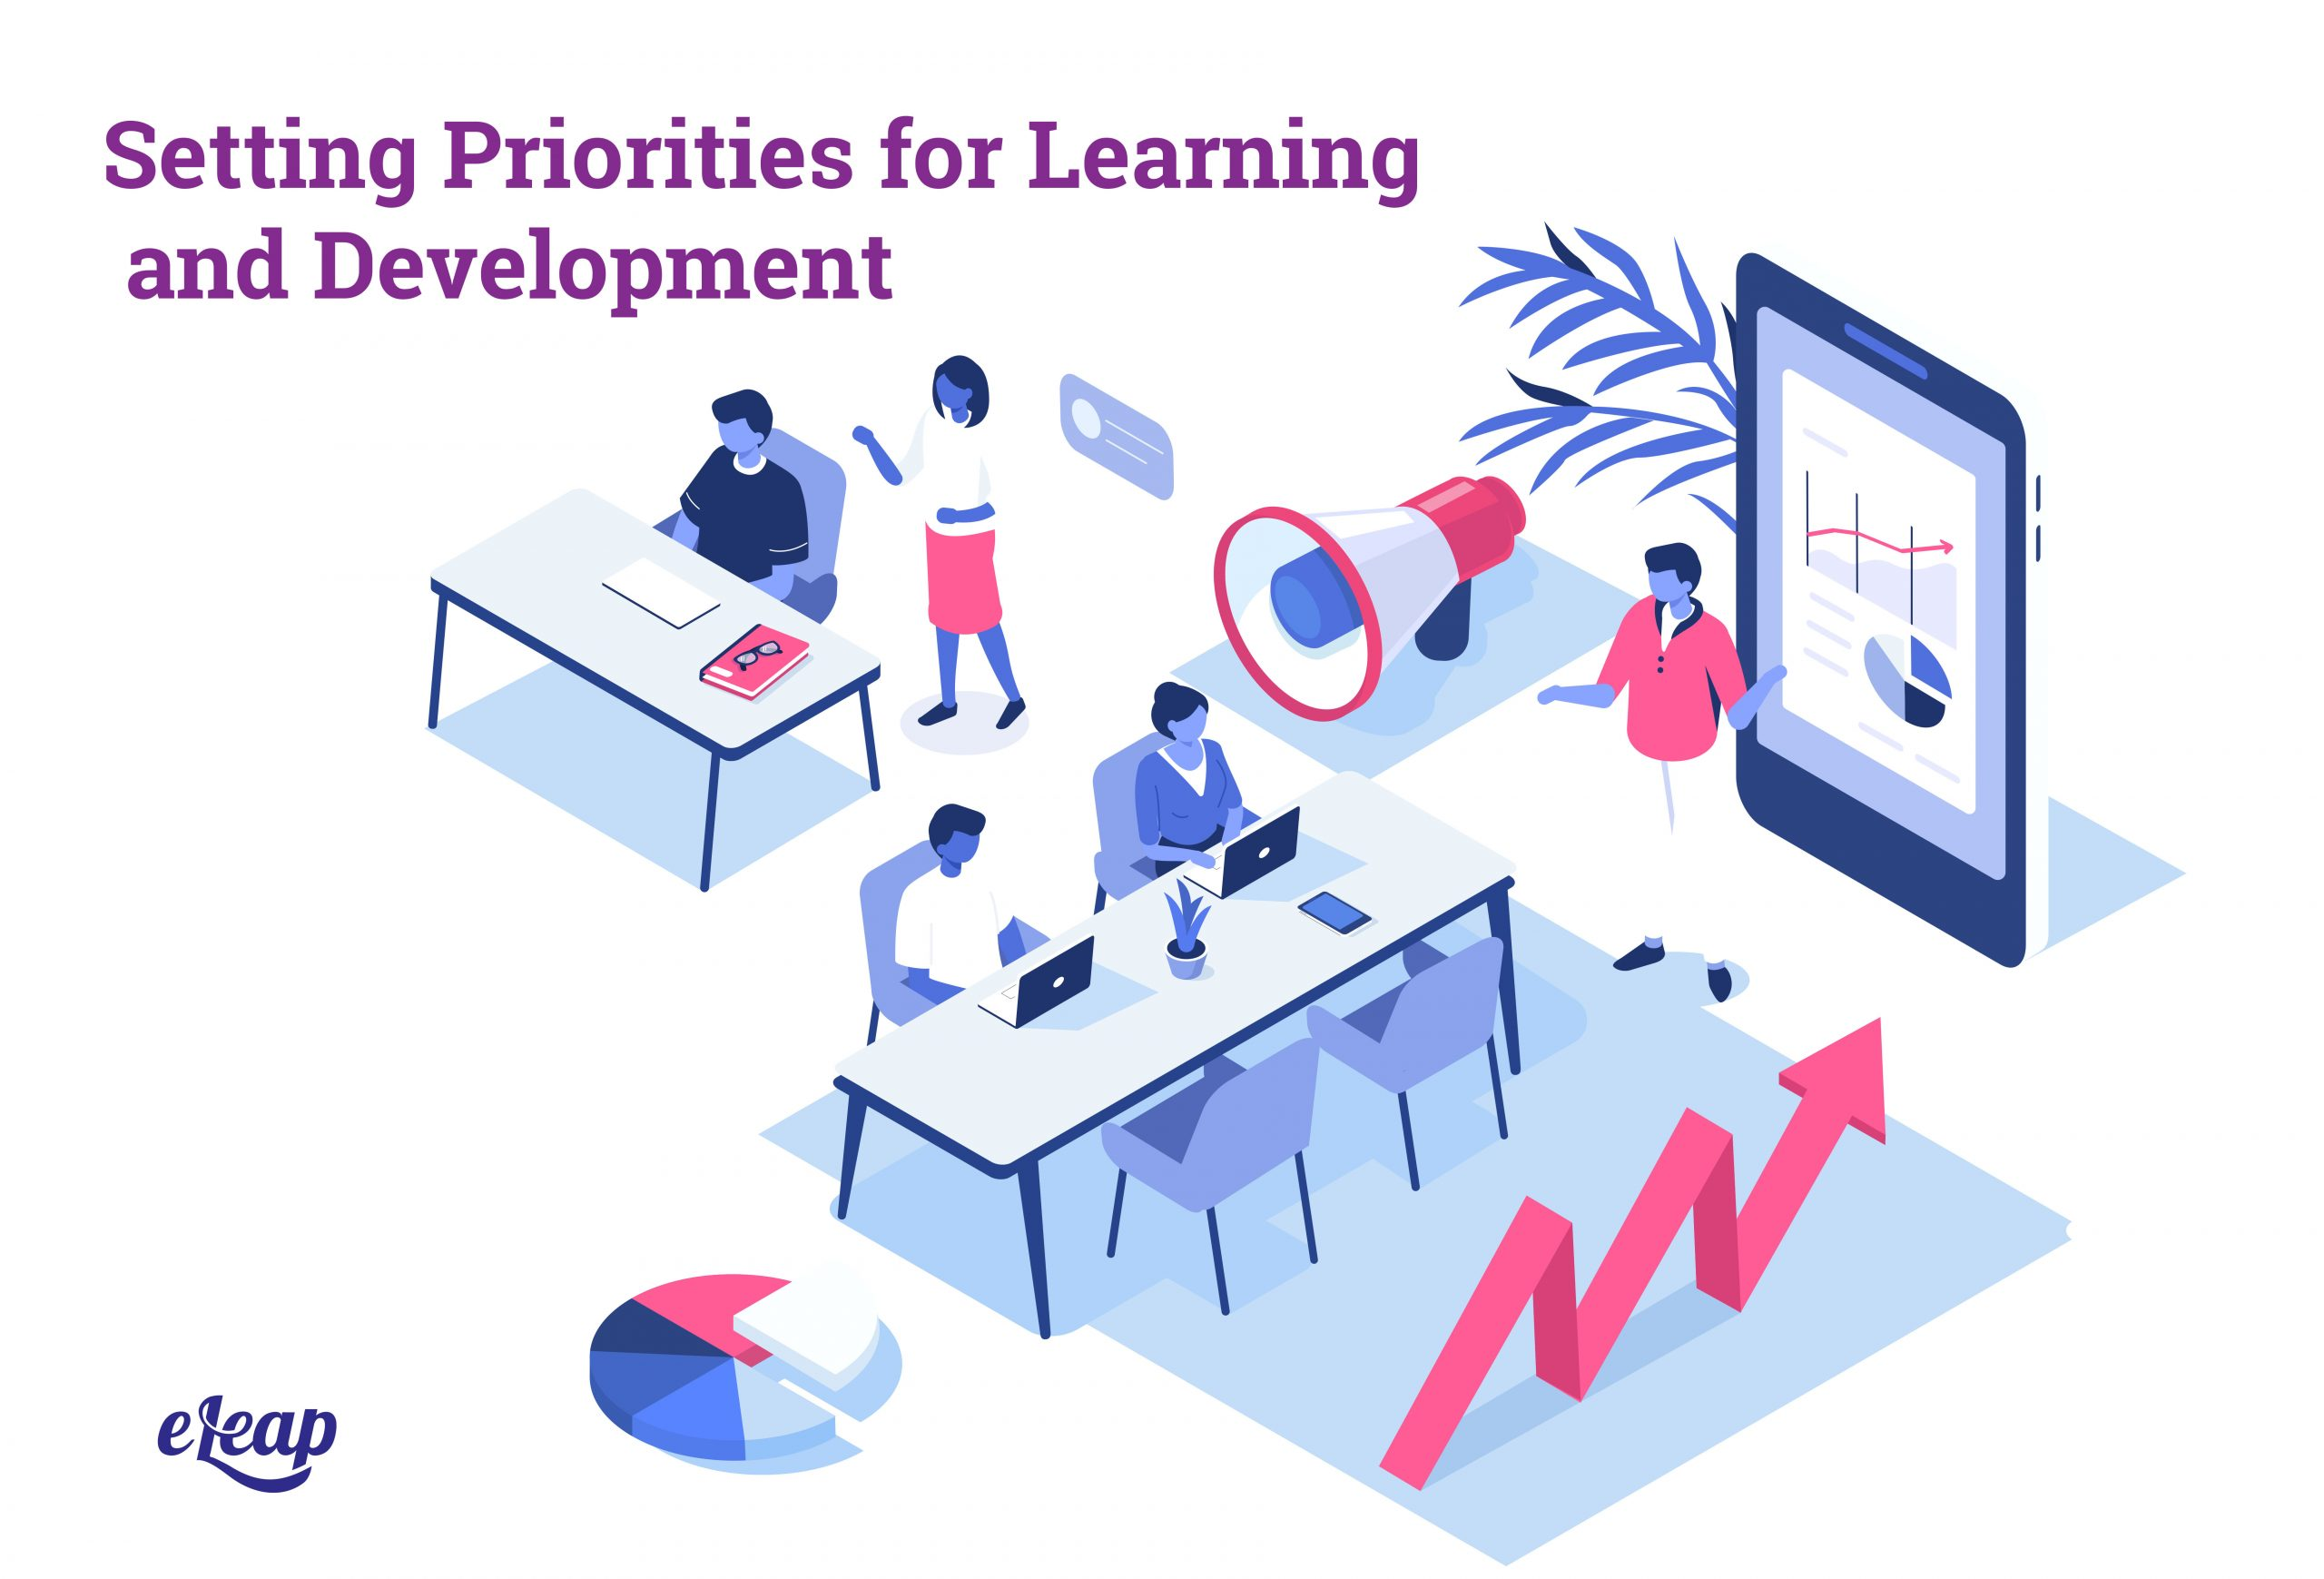 Setting Priorities for Learning and Development